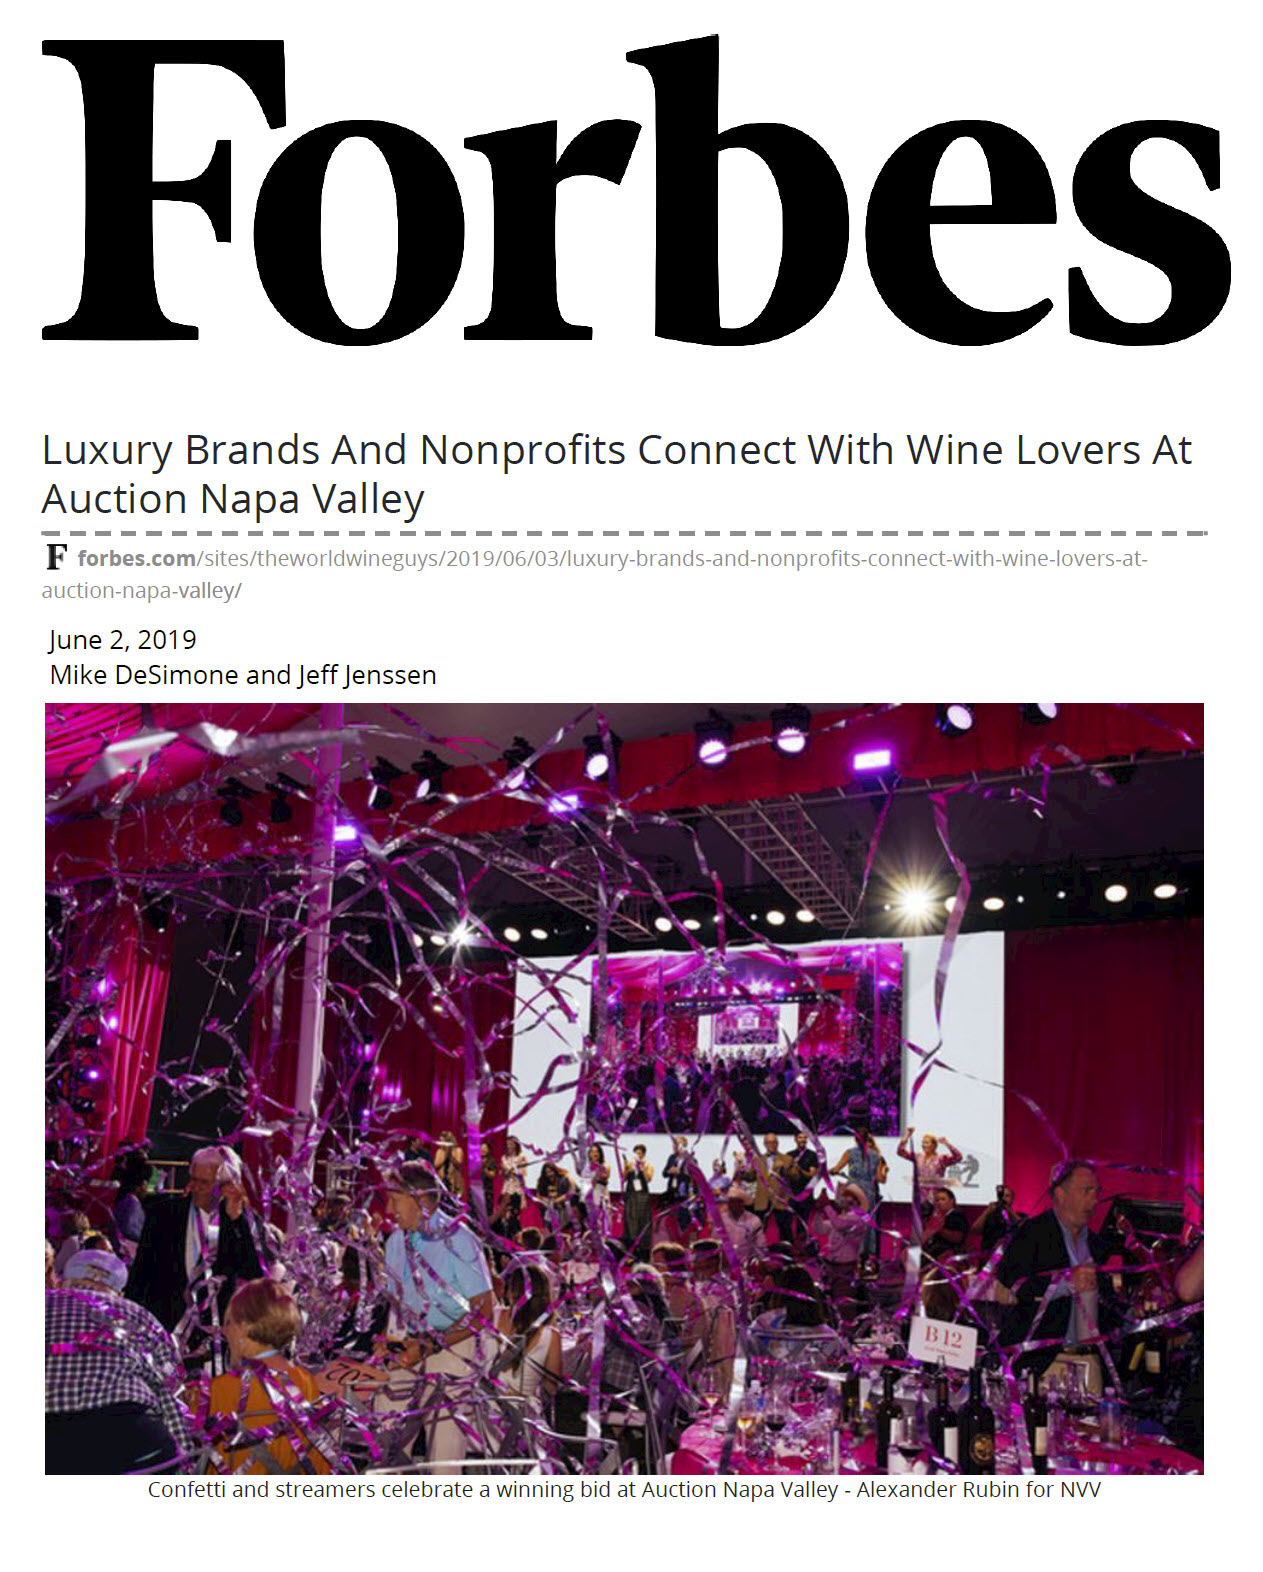 Aldea, Auction Napa Valley, Katy Perry and a mention in Forbes Magazine